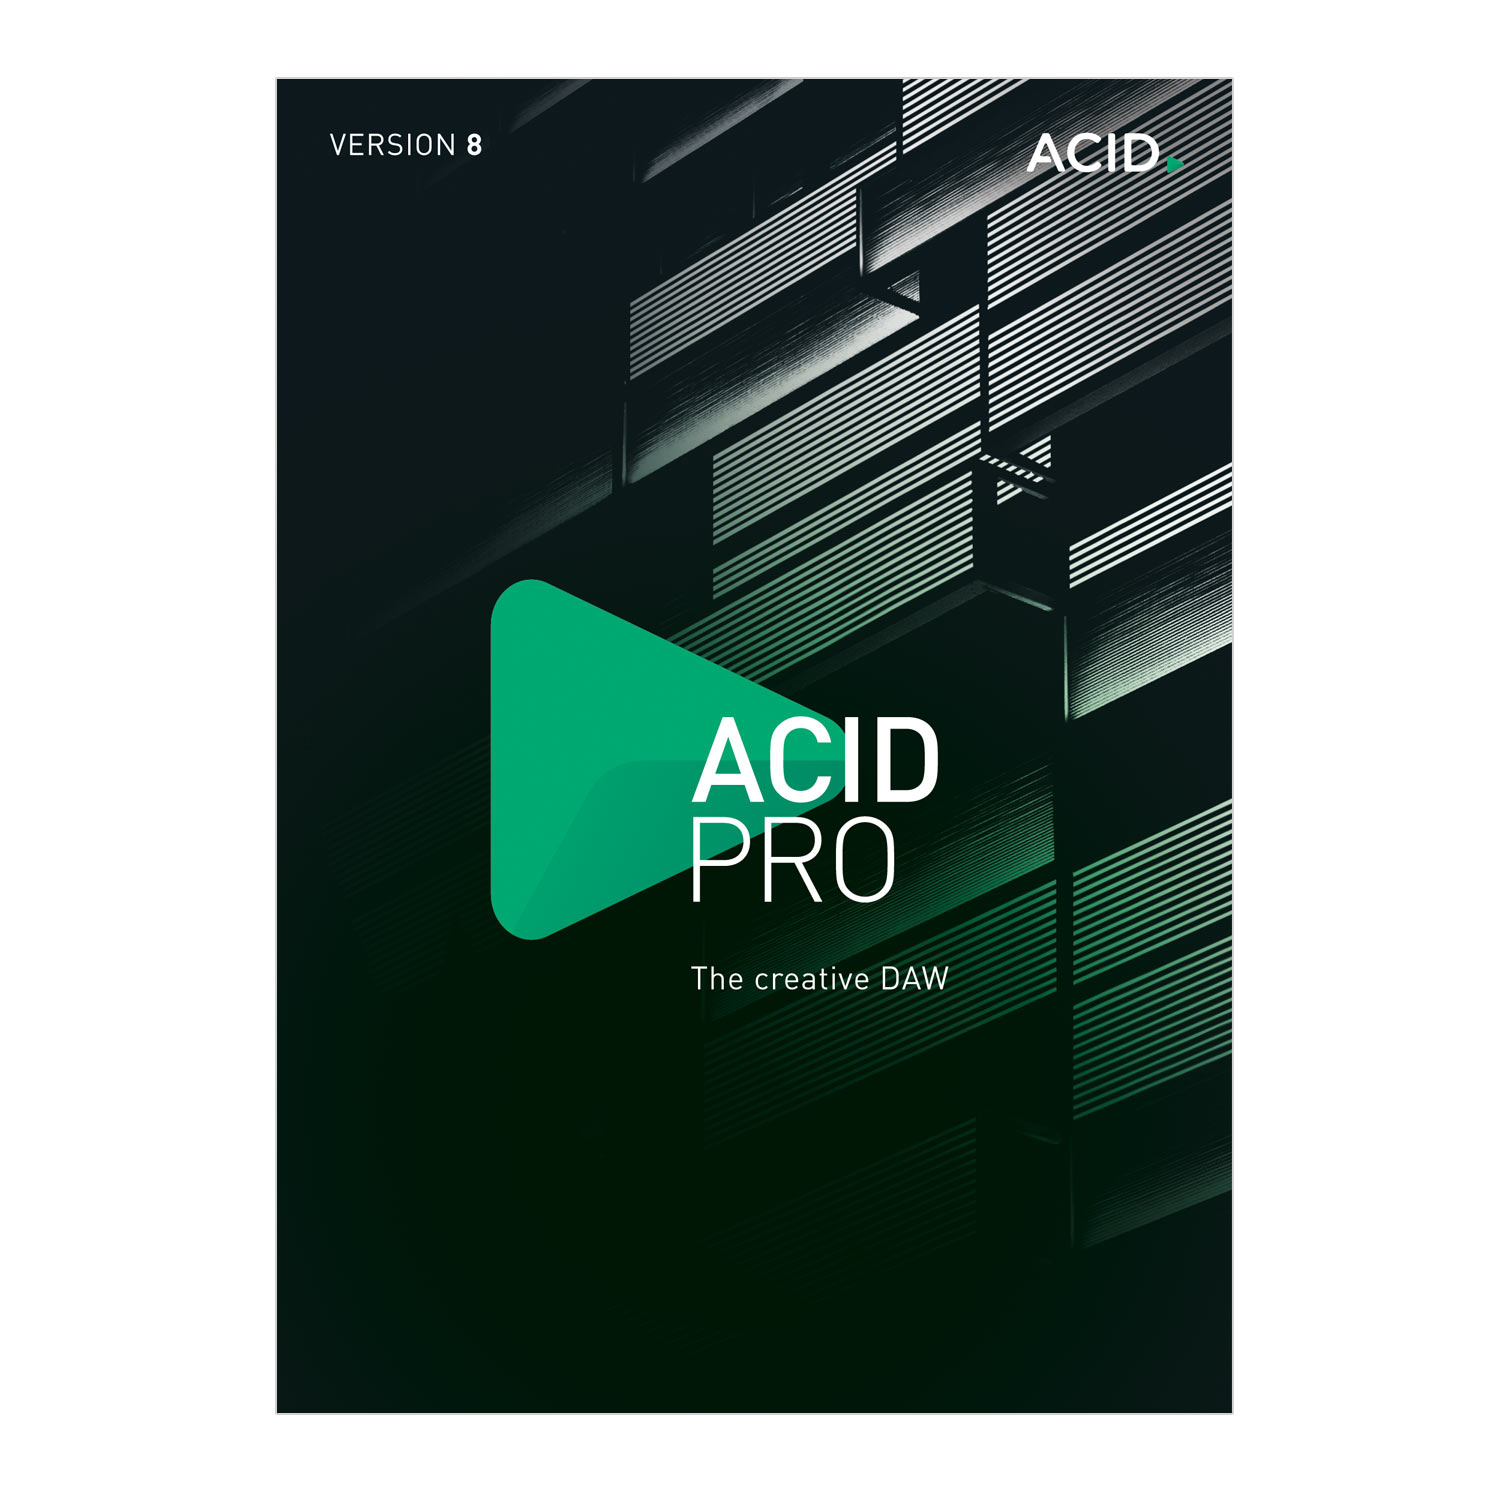 ACID Pro - Version 8 - Professional music production with ACIDized loops [Download] by ACID